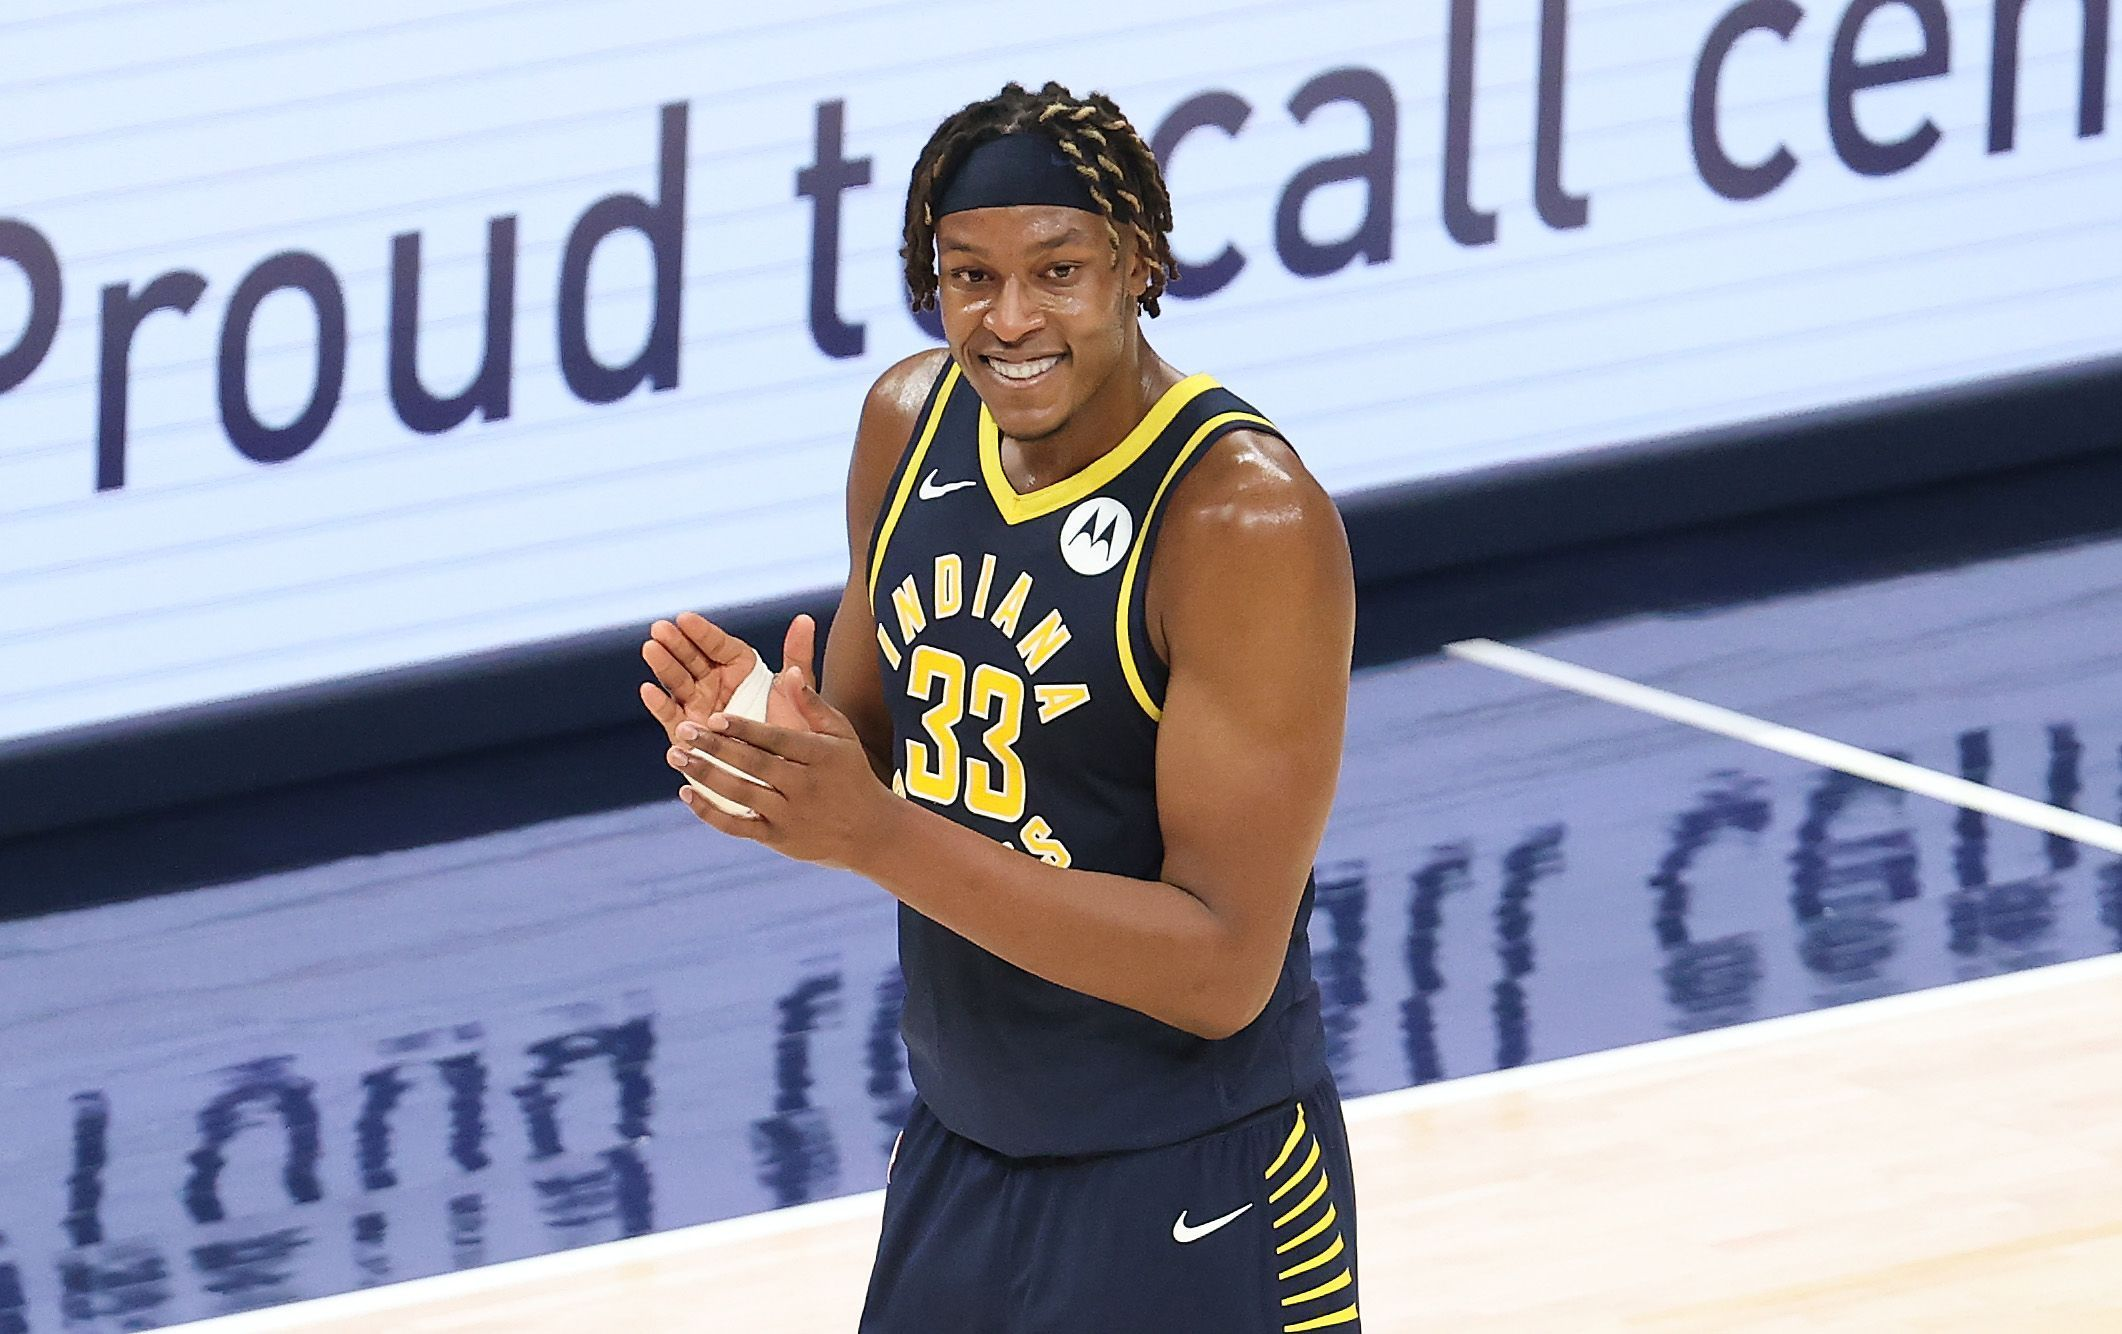 Myles Turner clapping his hands after hearing the ref's decision